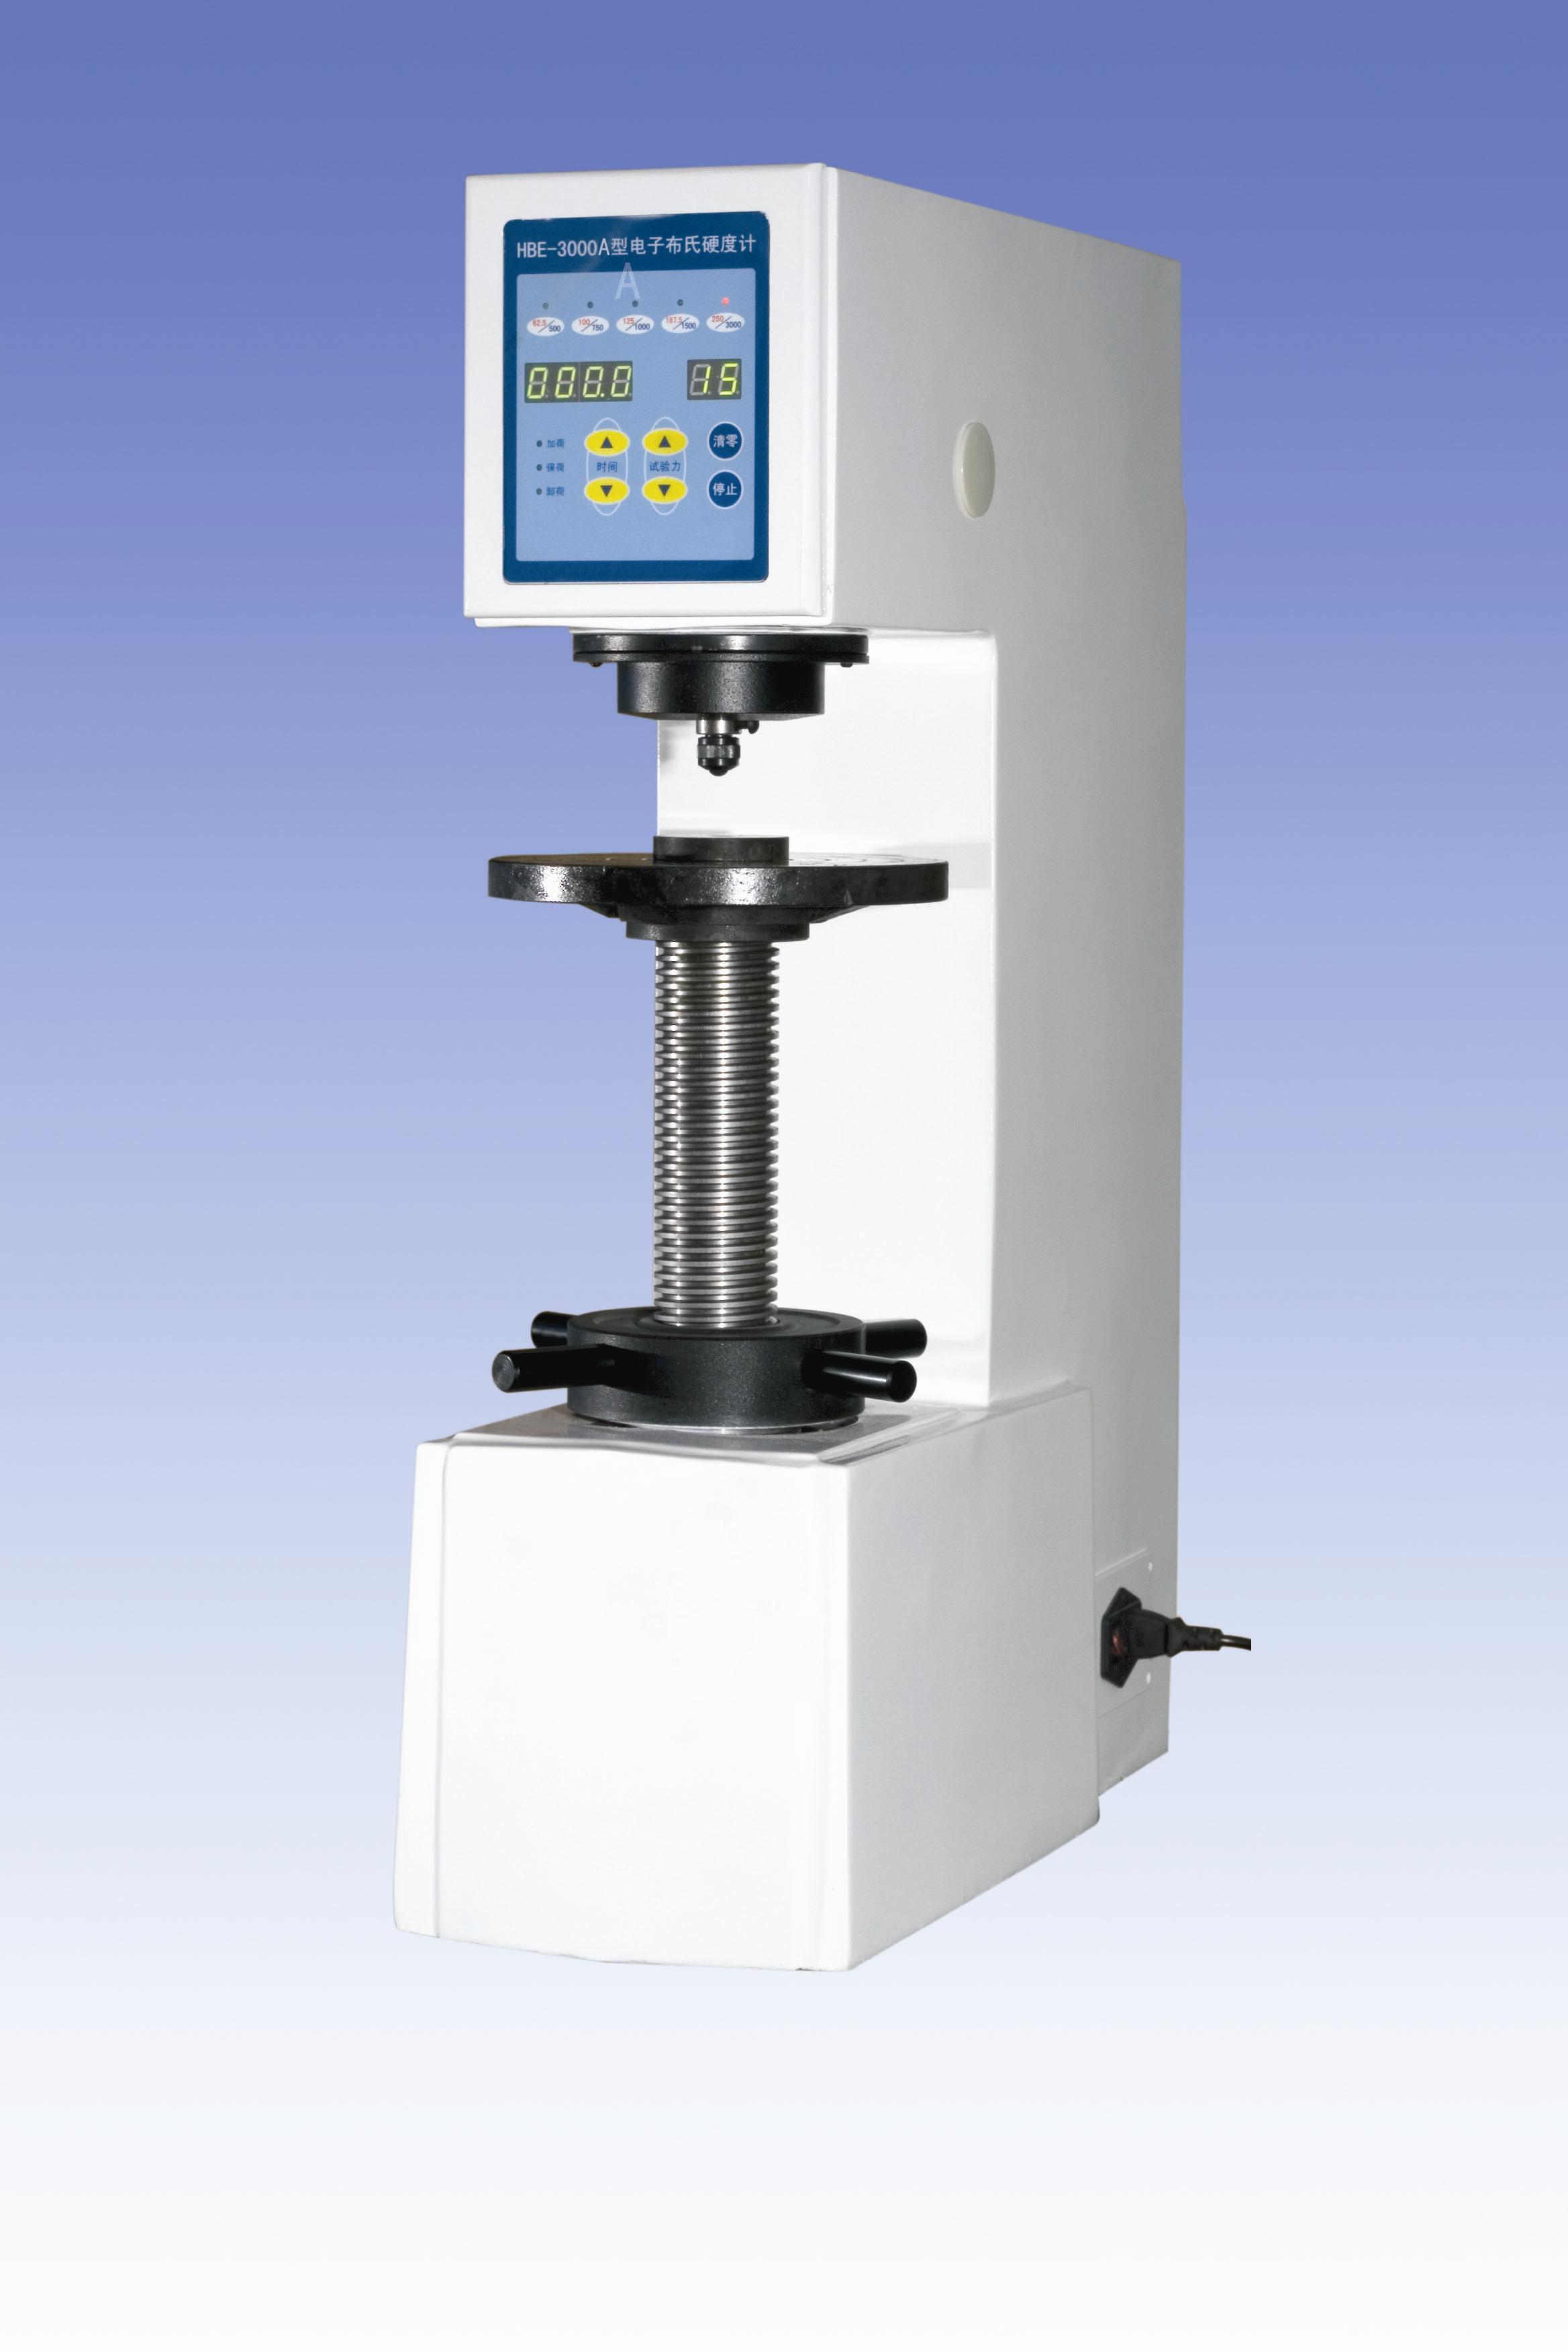 Brinell Hardness Tester HBE-3000A